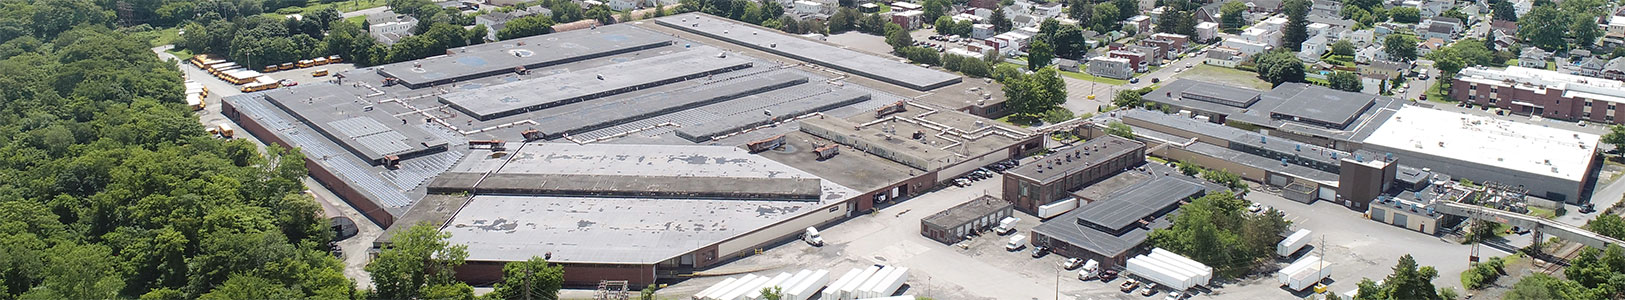 Aerial photo of warehouse and loading area